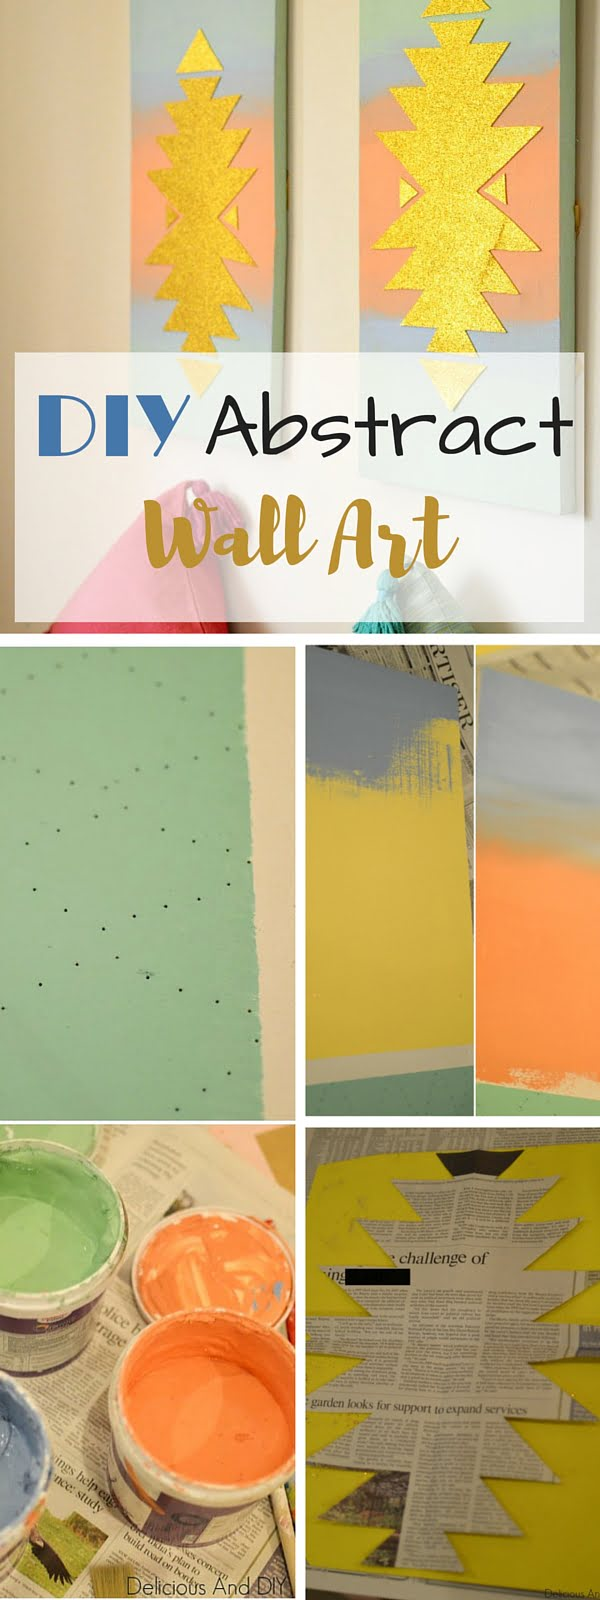 Check out the tutorial: #DIY Abstract Wall Art #crafts #homedecor